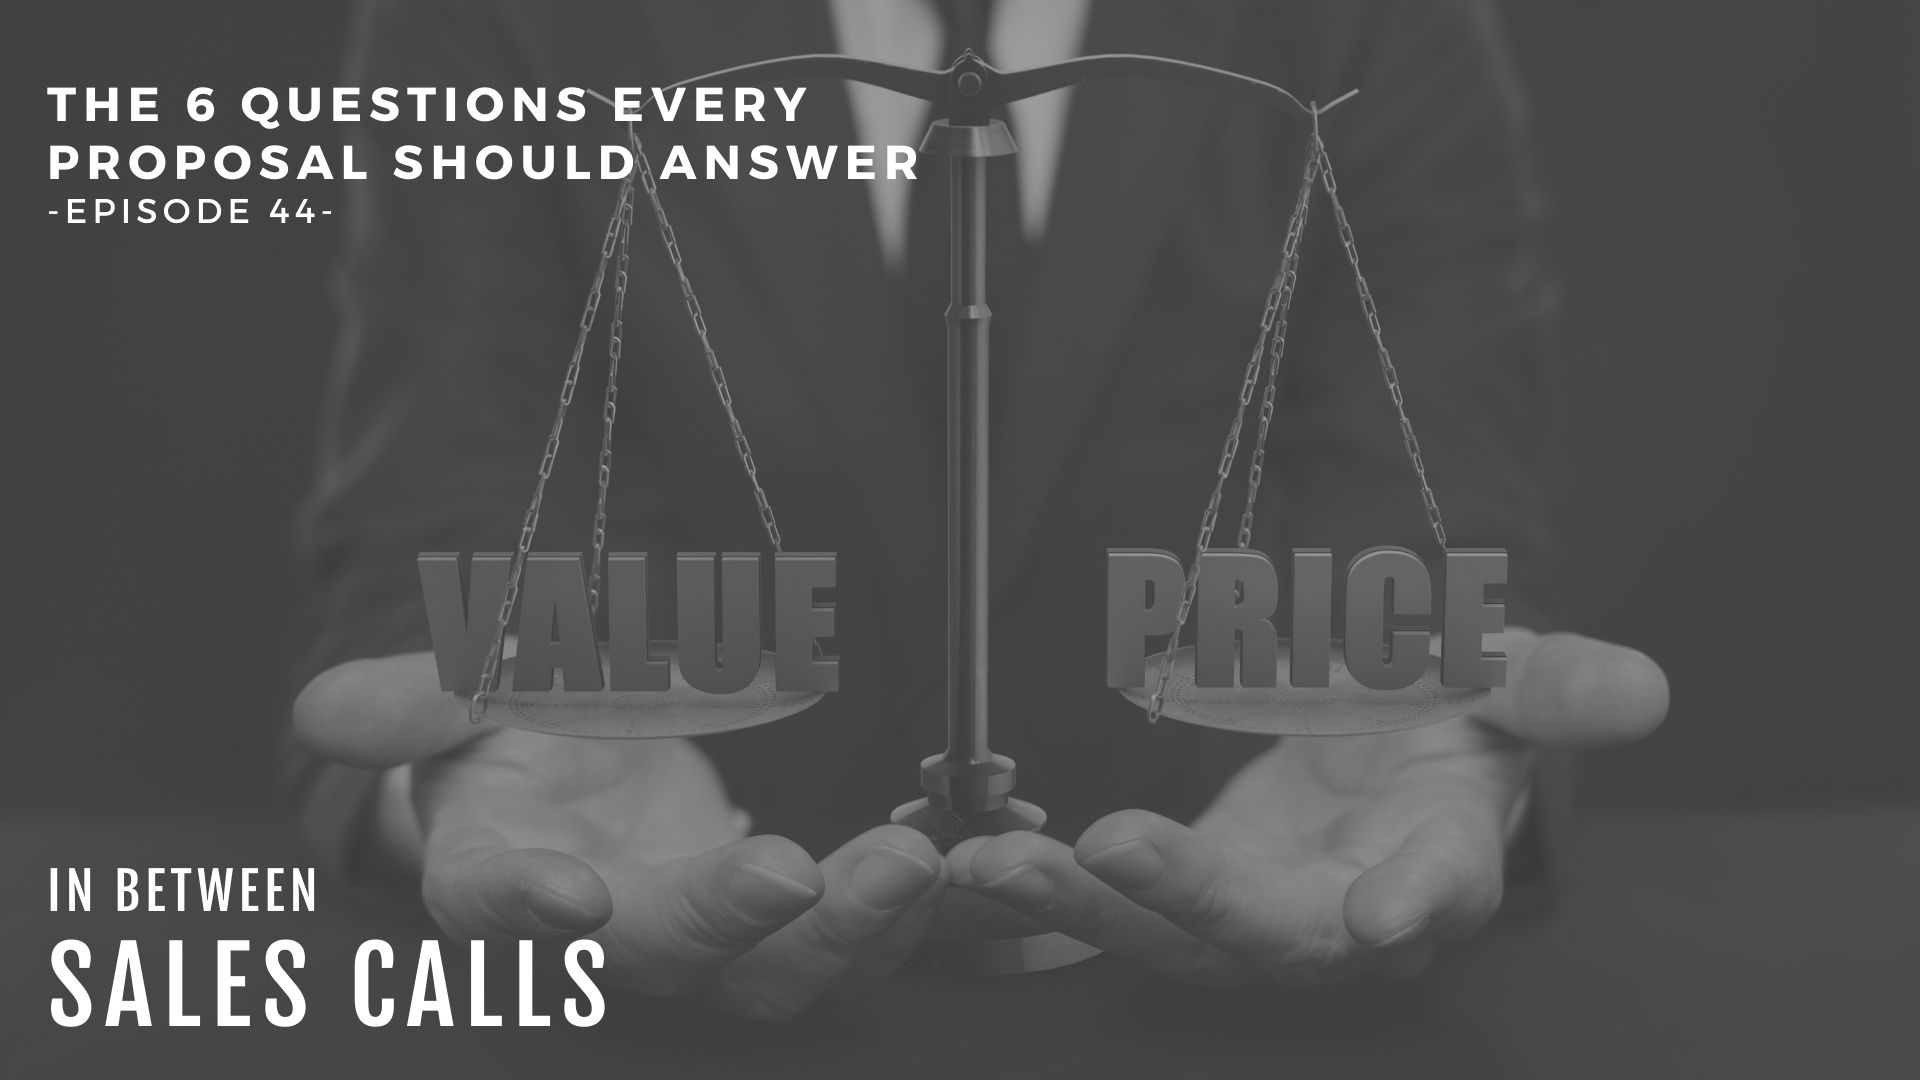 6-questions-every-proposal-should-answer-modern-sales-training-in-between-sales-calls-podcast